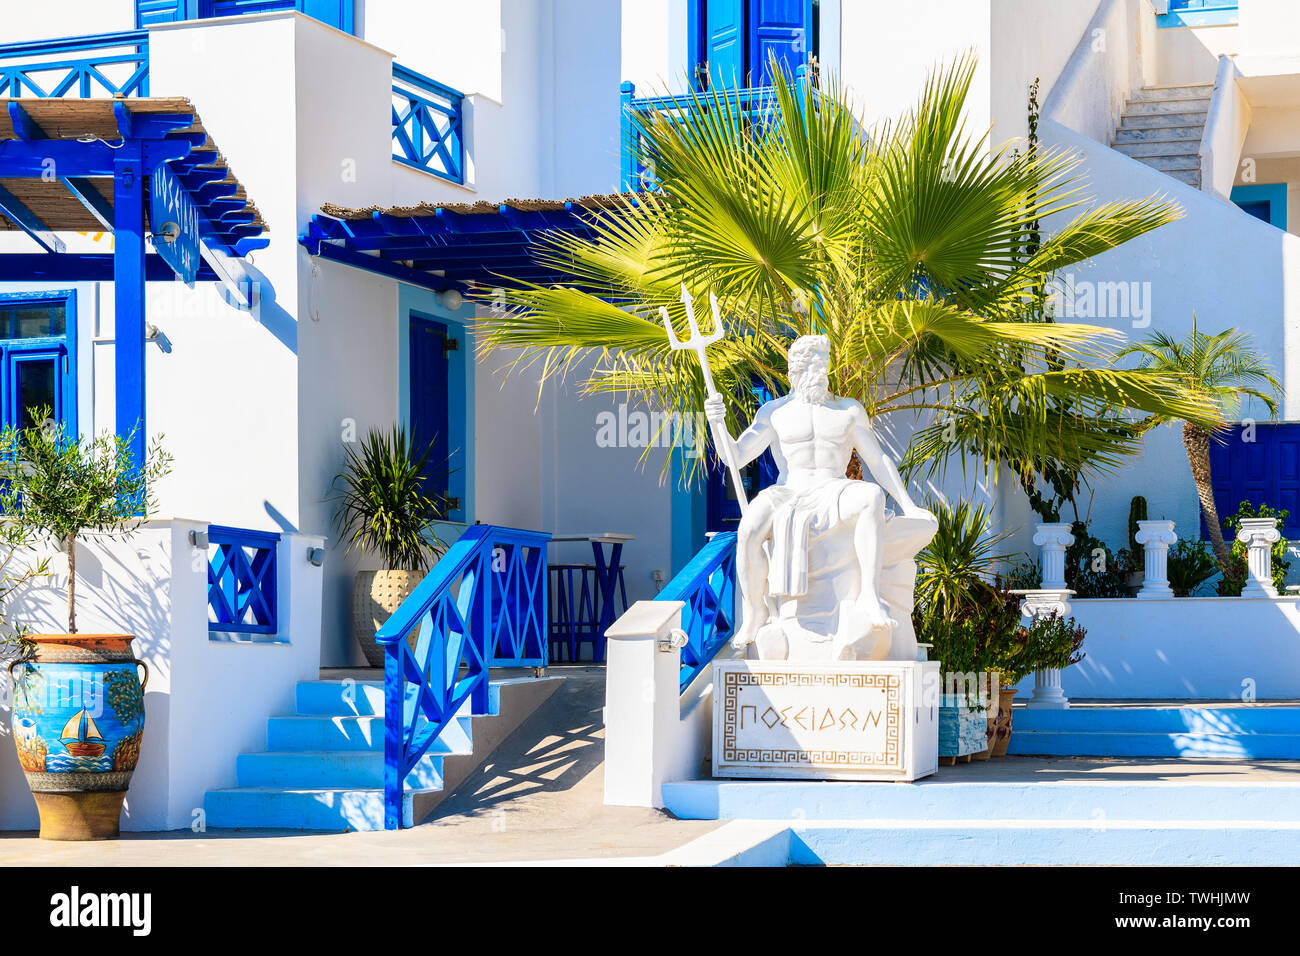 """FINIKI PORT, KARPATHOS ISLAND - SEP 25, 2018: Sculpture of """"Poseidon"""" - god of the sea in ancient Greek religion and myth in front of typical building Stock Photo"""